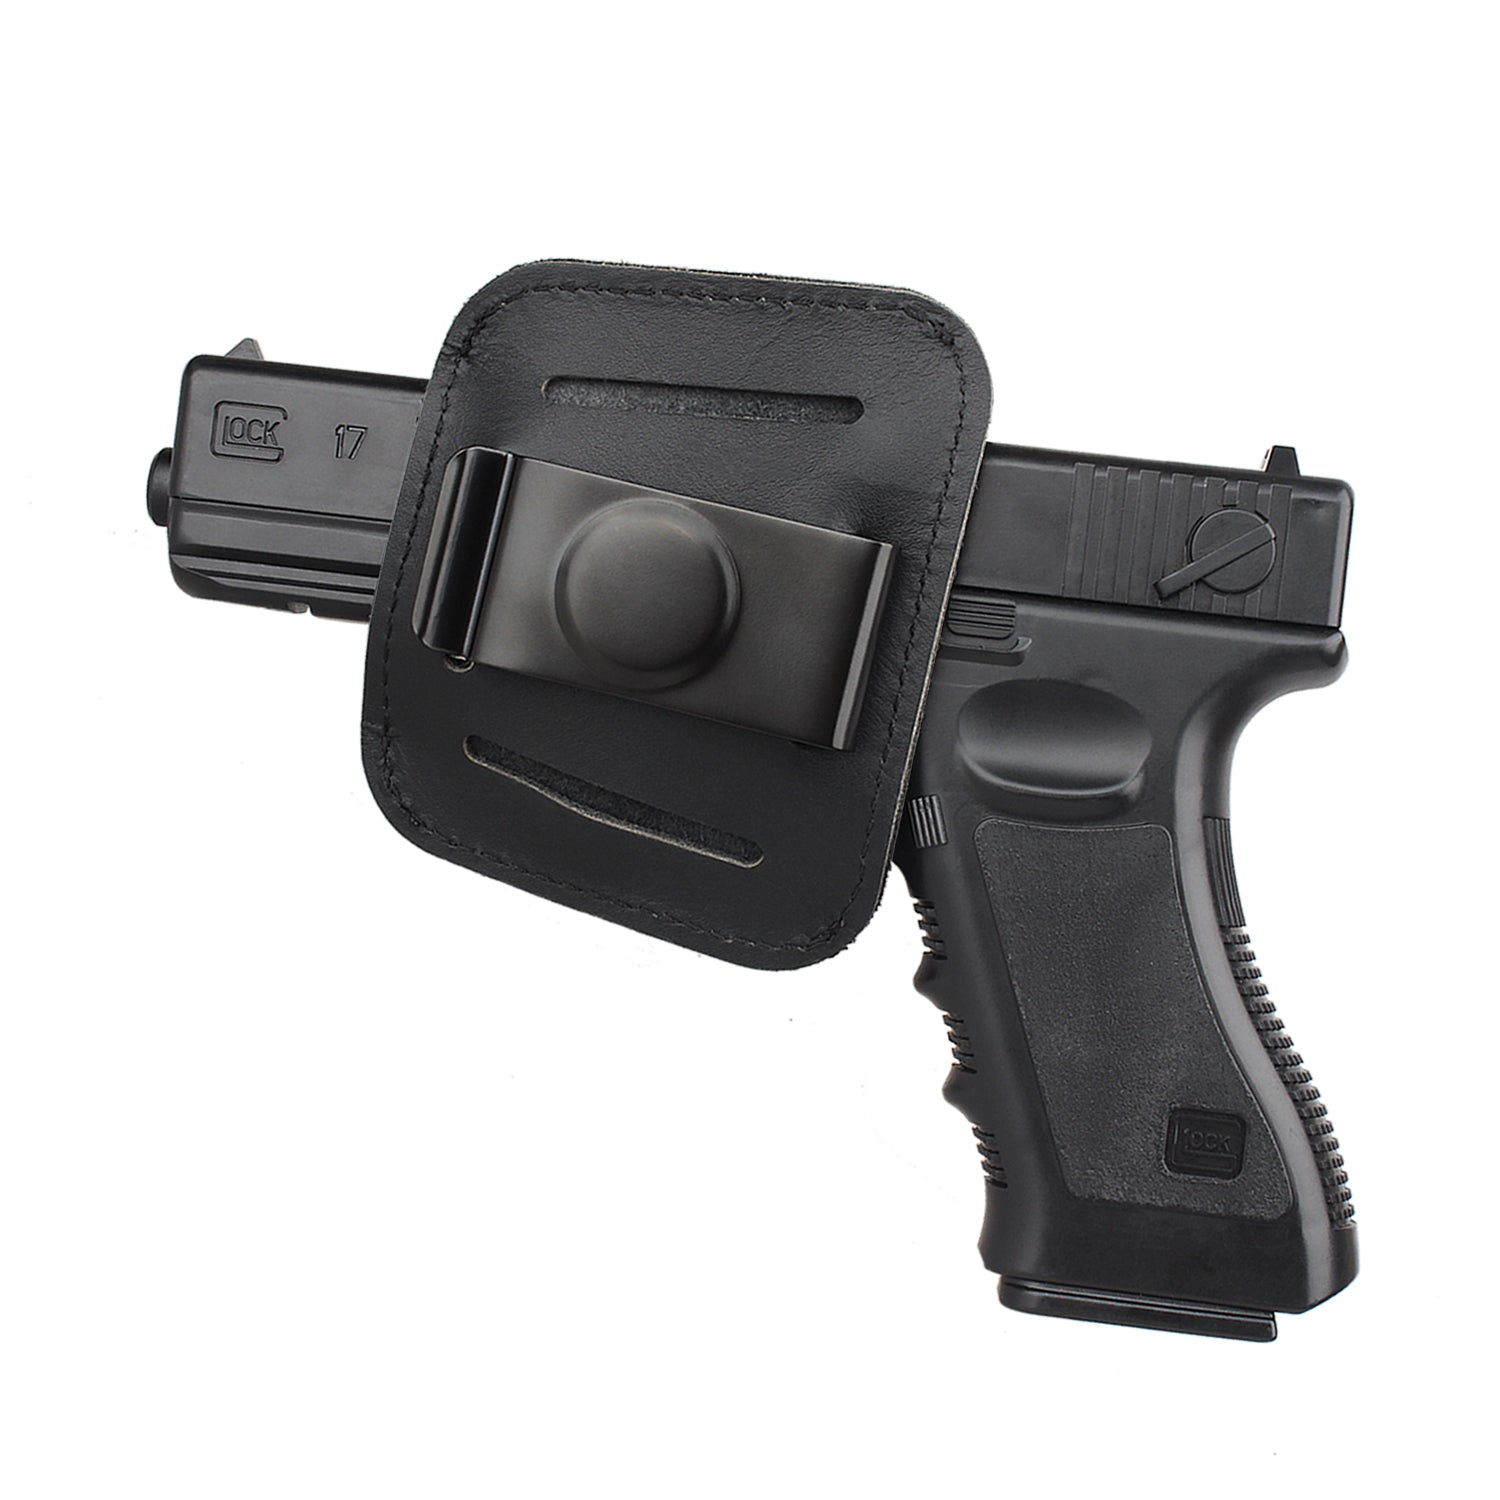 Portable Universal Leather Pistol Holster IWB Concealed Carry Glock 17  M/&P S/&W